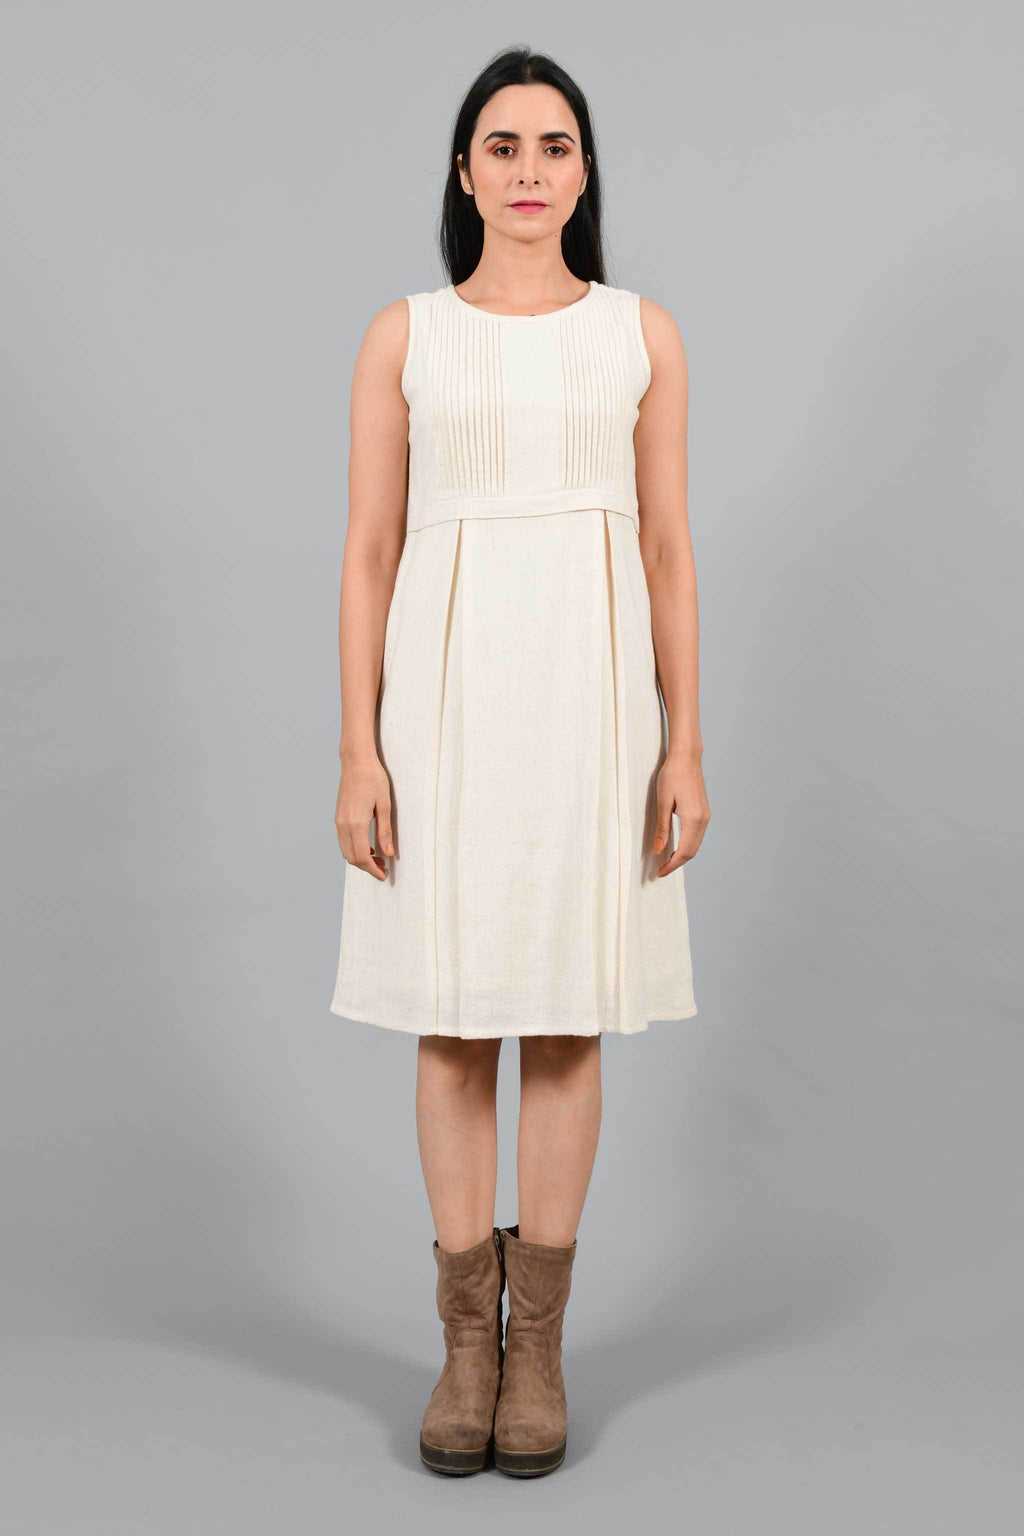 Front pose of an Indian female womenswear fashion model in an off-white Cashmere Cotton Pleated Dress made using handspun and handwoven khadi cotton by Cotton Rack.